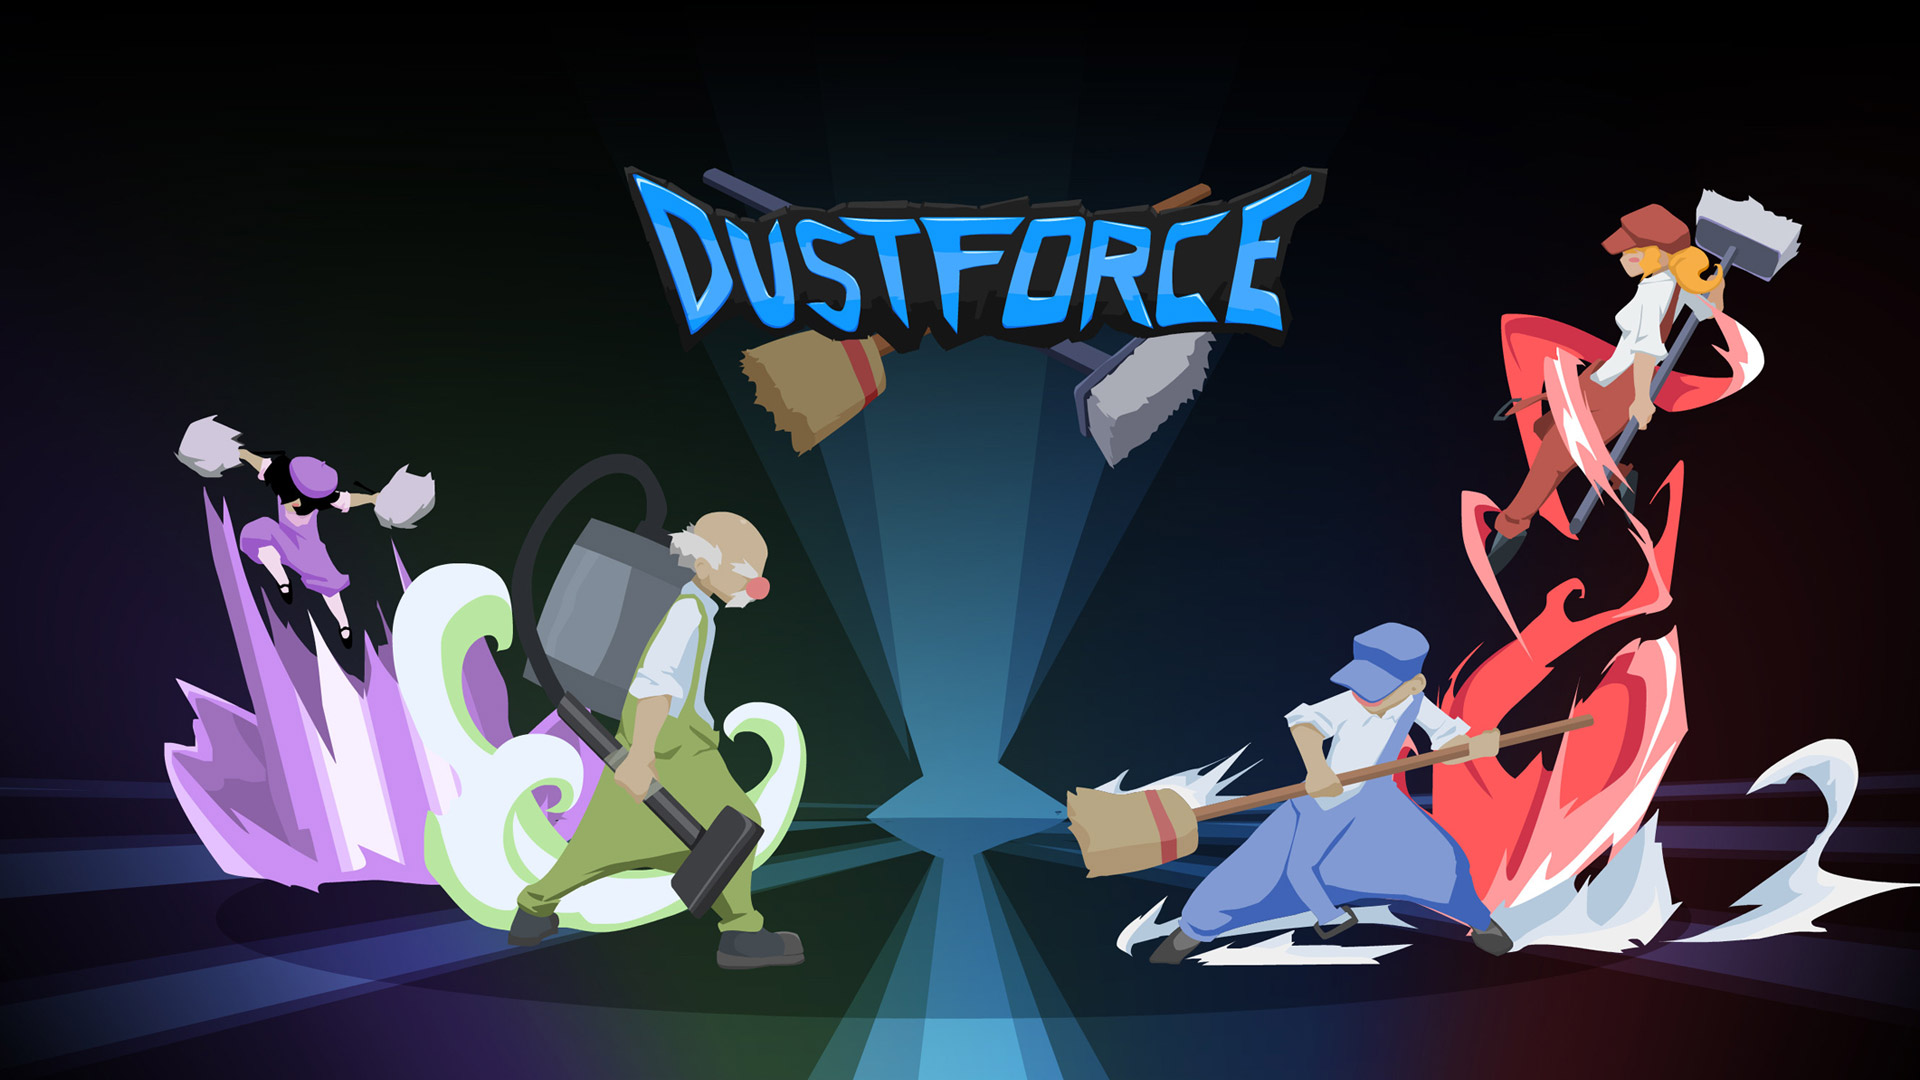 Free Dustforce Wallpaper in 1920x1080